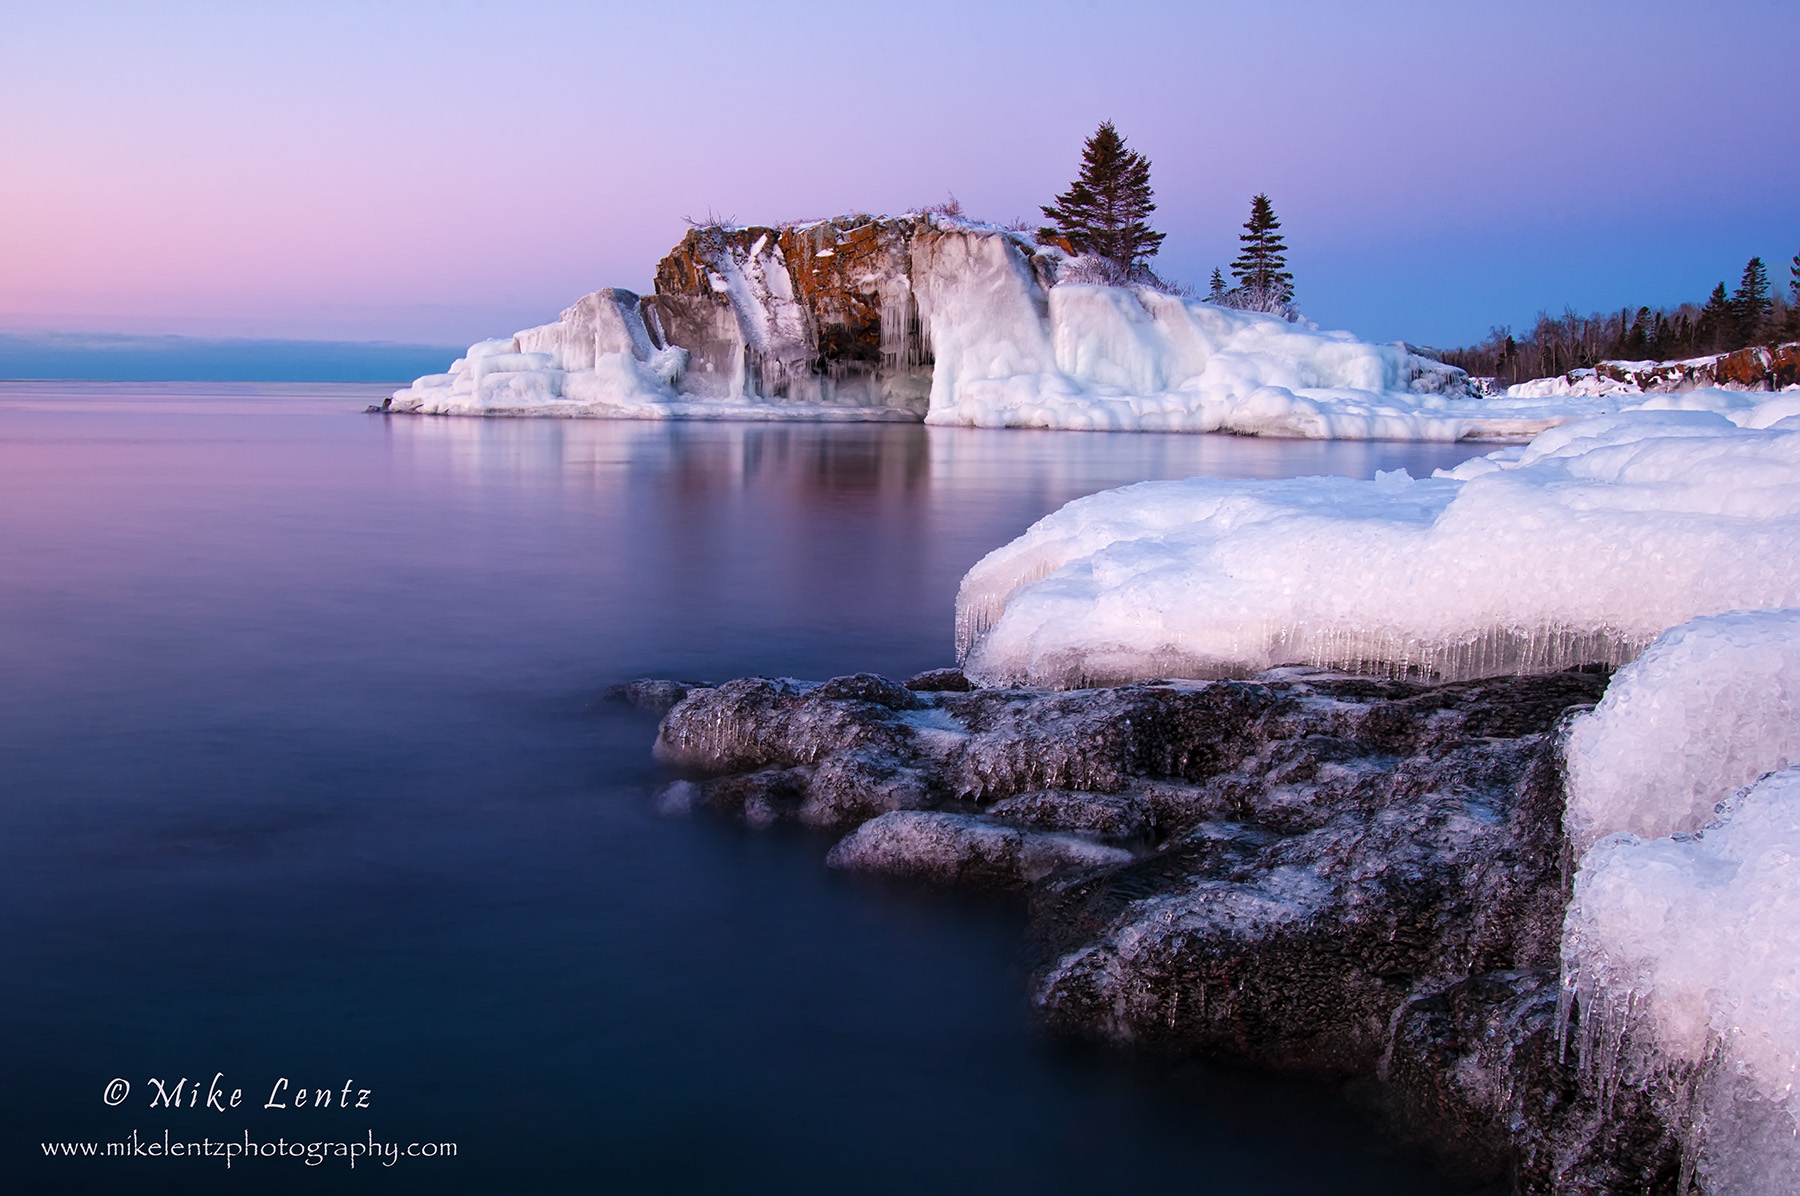 Hollow rock icy